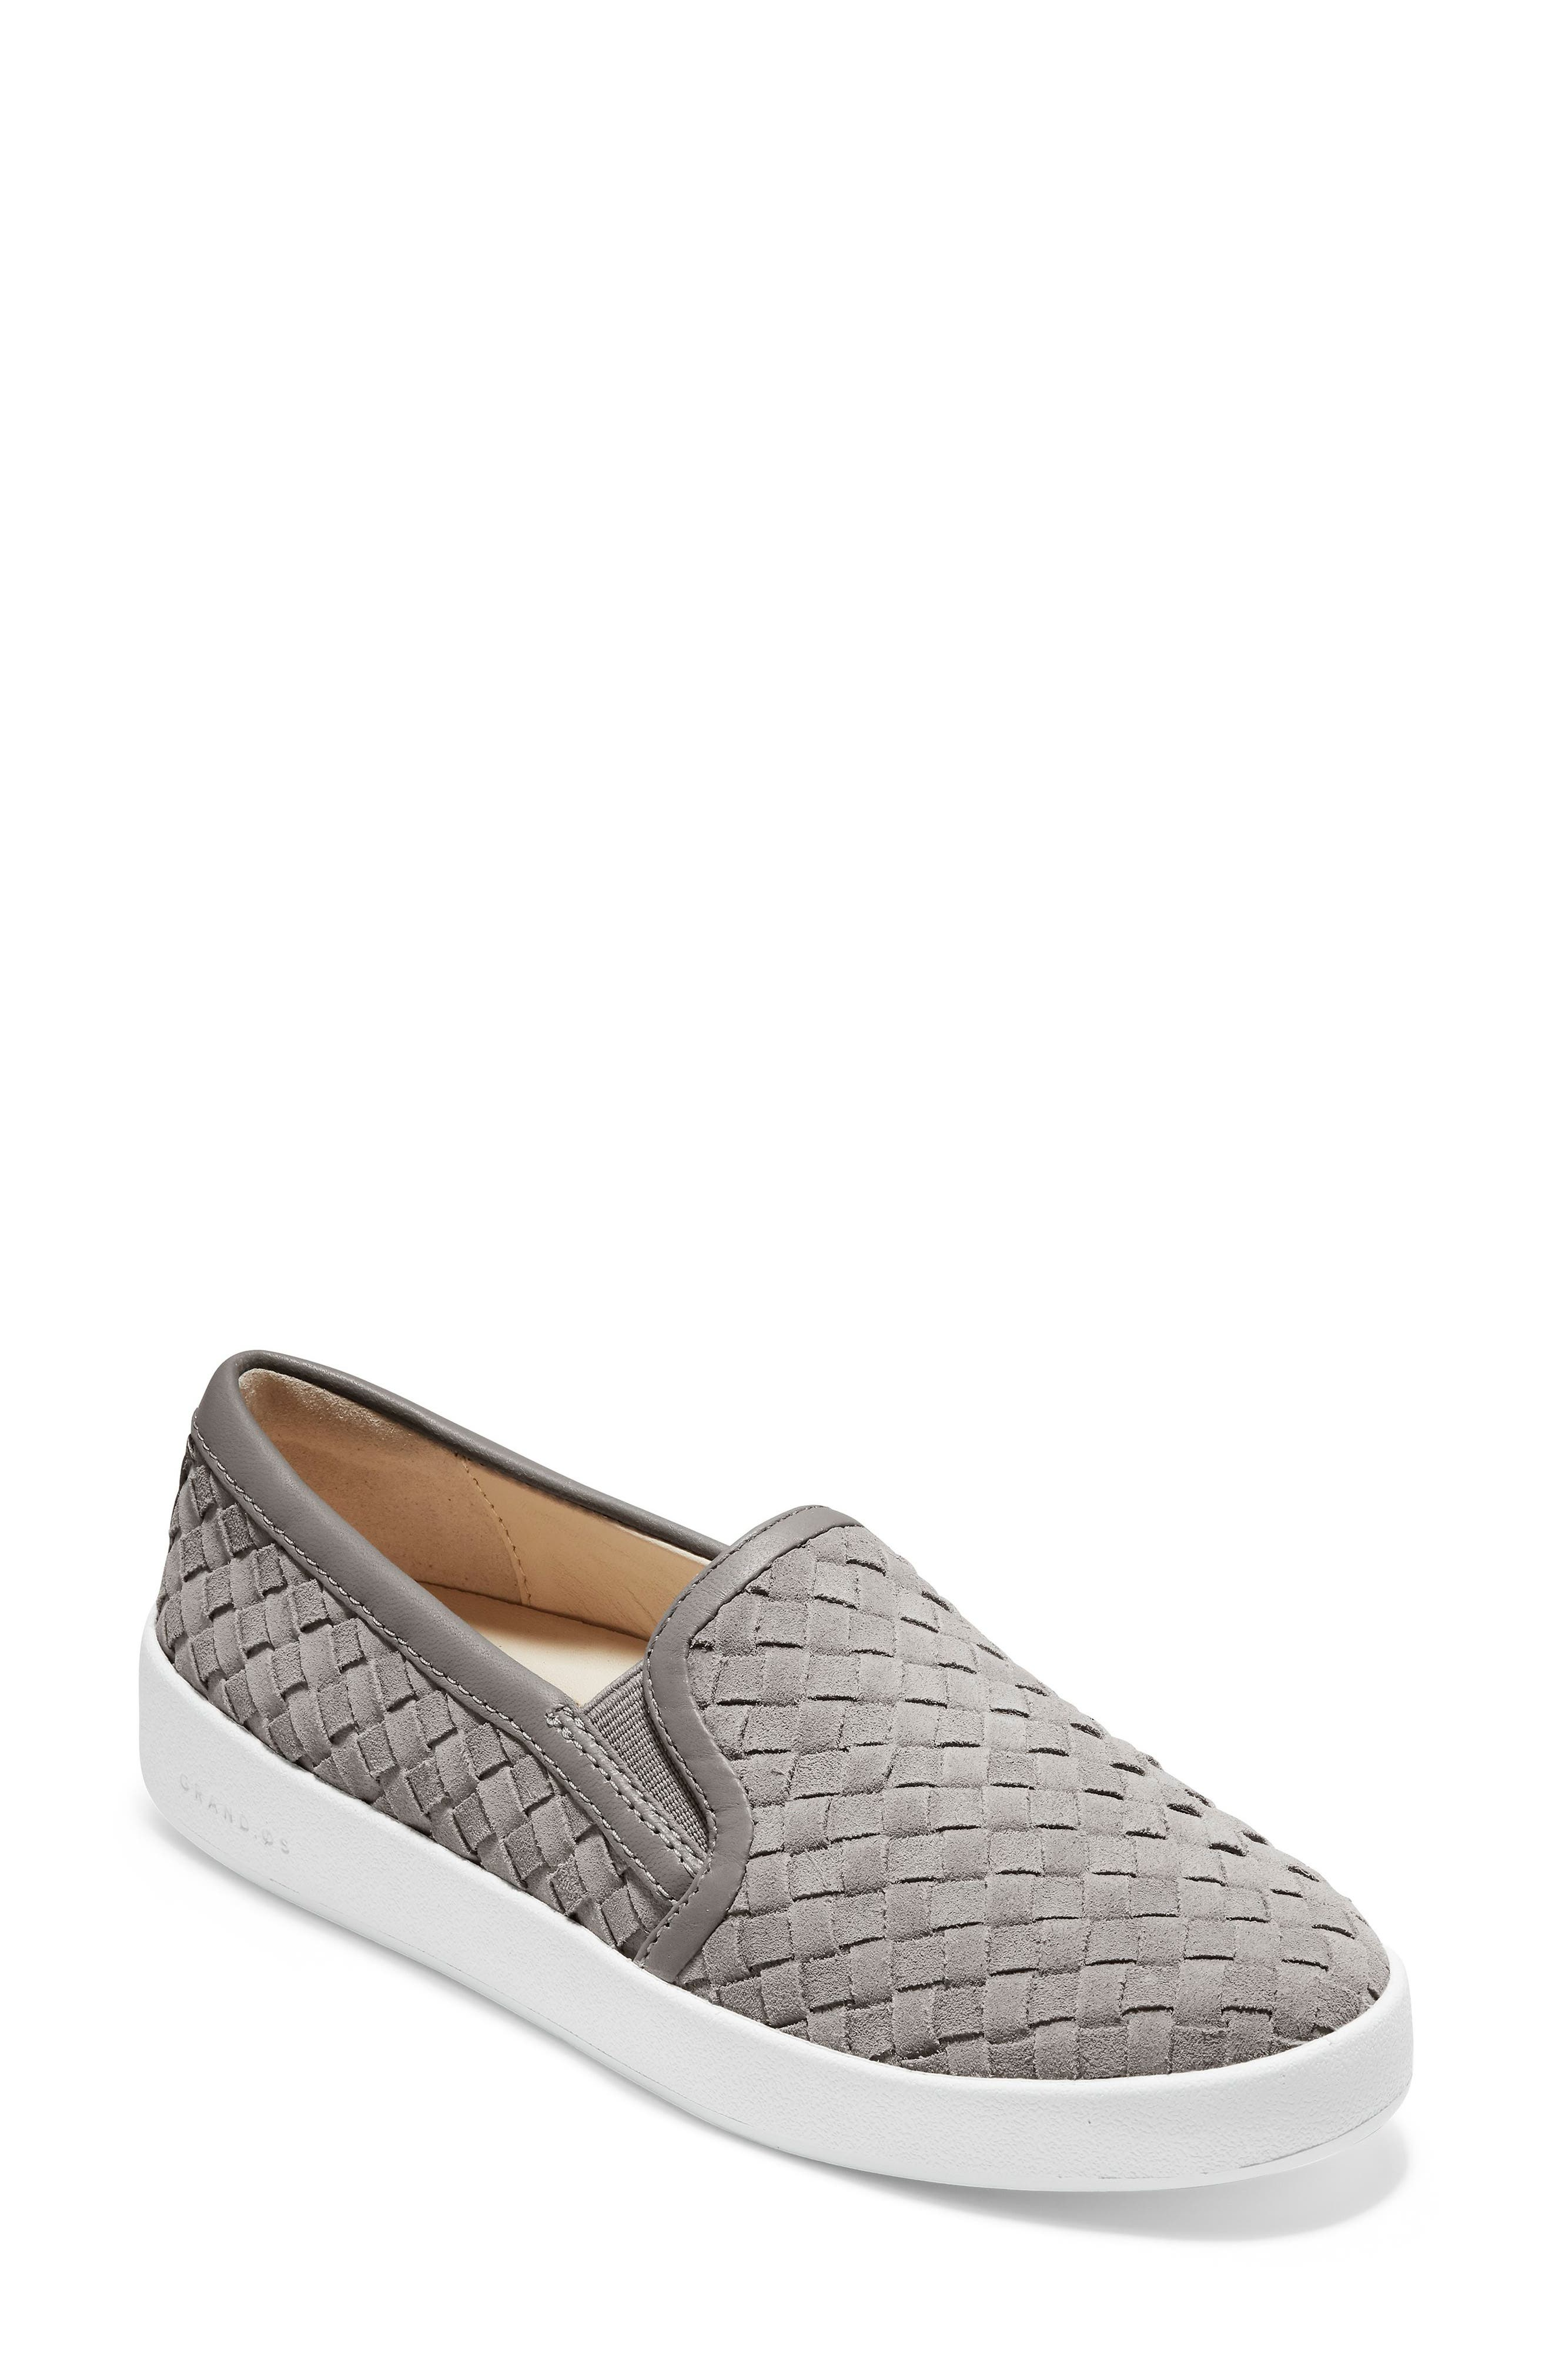 COLE HAAN, GrandPro Woven Slip-On Sneaker, Main thumbnail 1, color, IRONSTONE WOVEN SUEDE